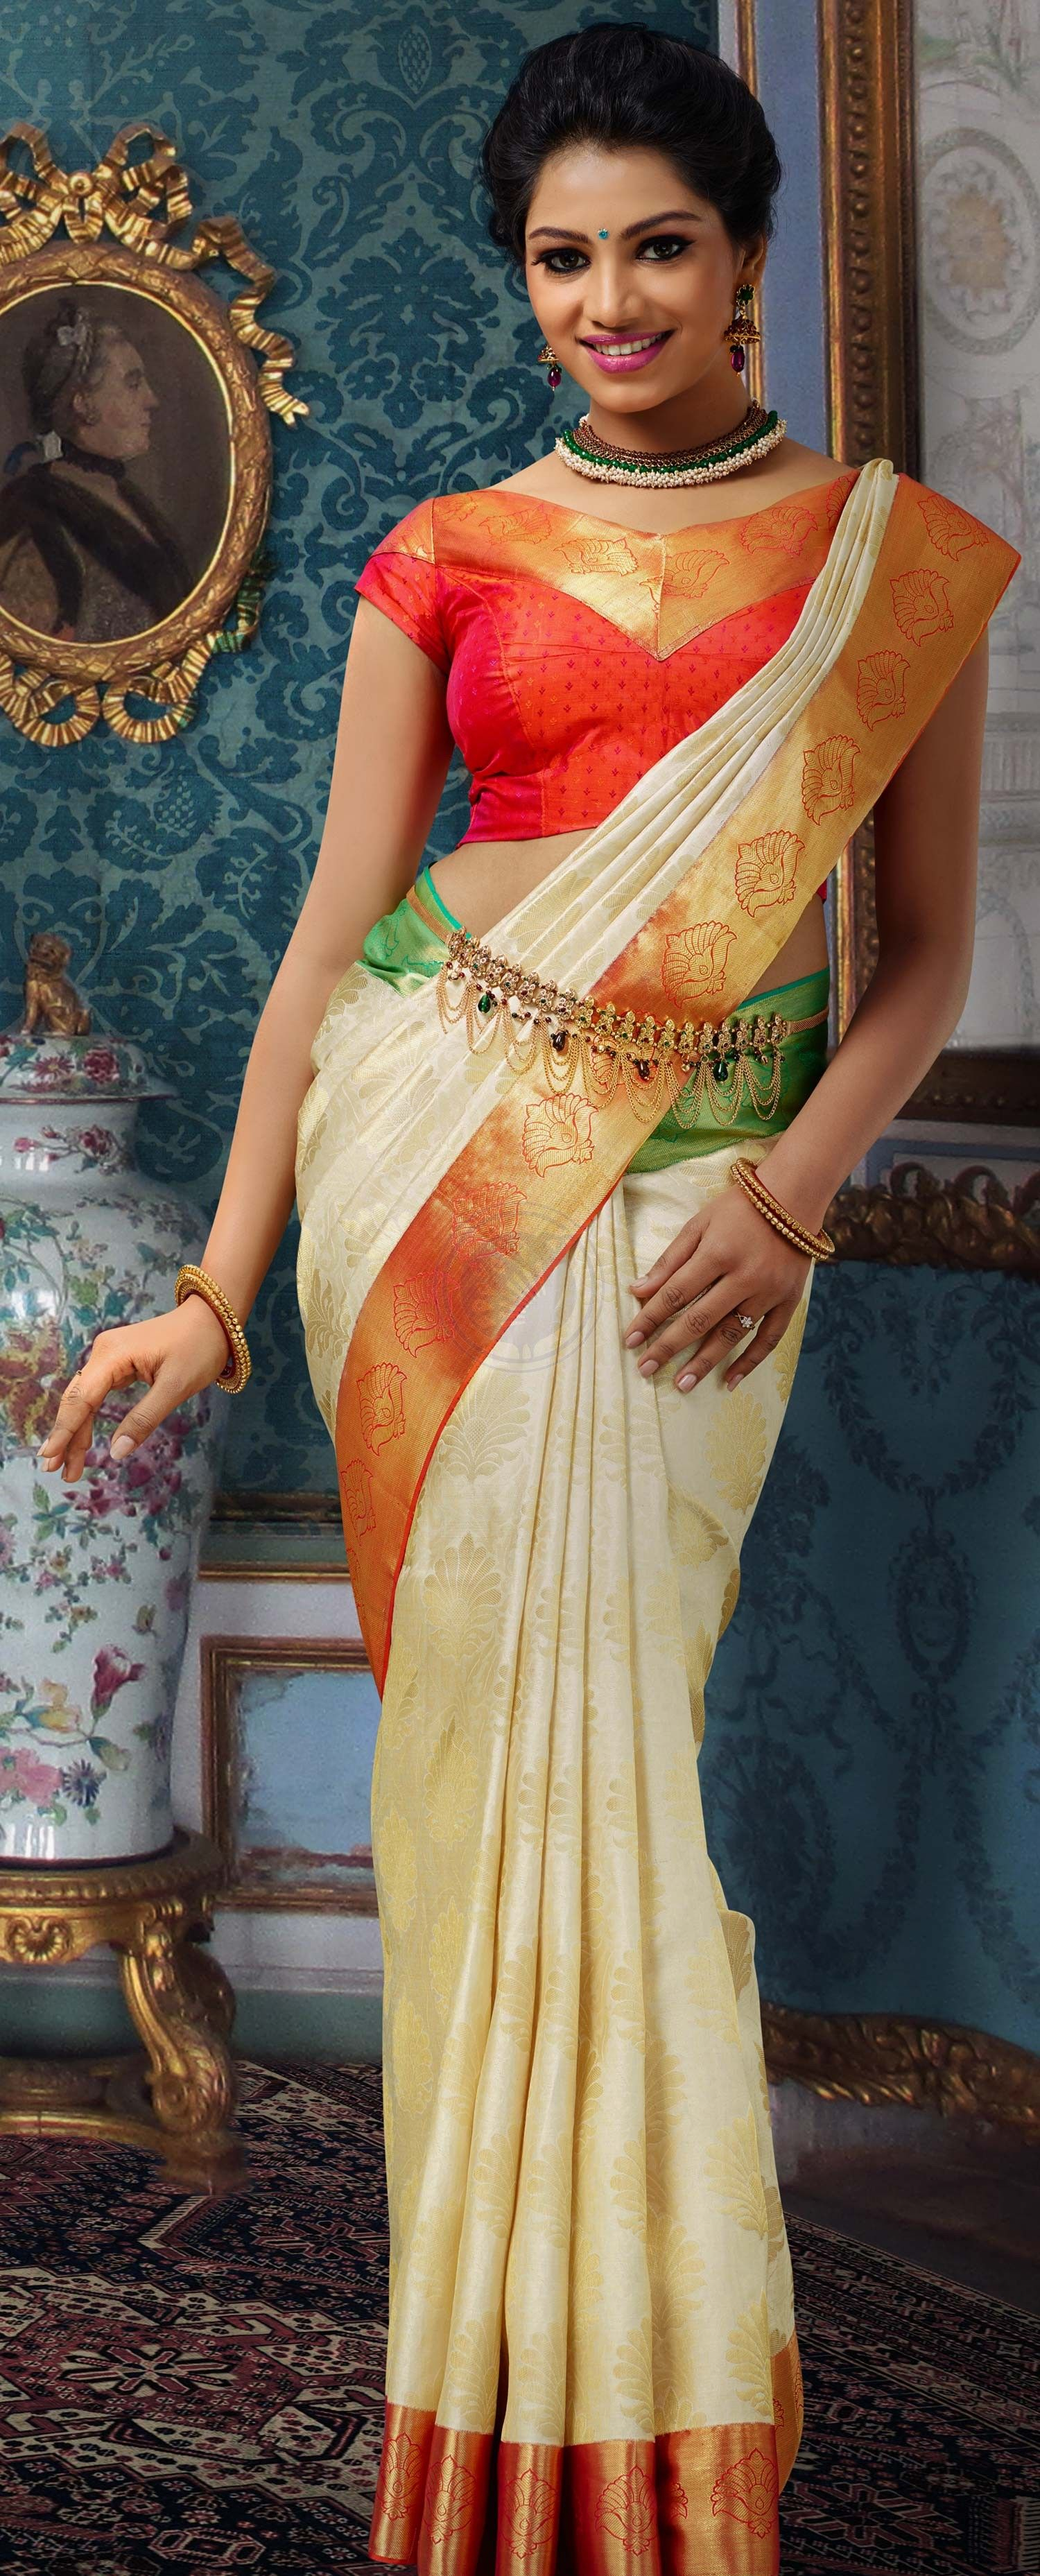 a34c50bb46 Lovely traditional red, green and off-white pattu Saree   CropTOP ...